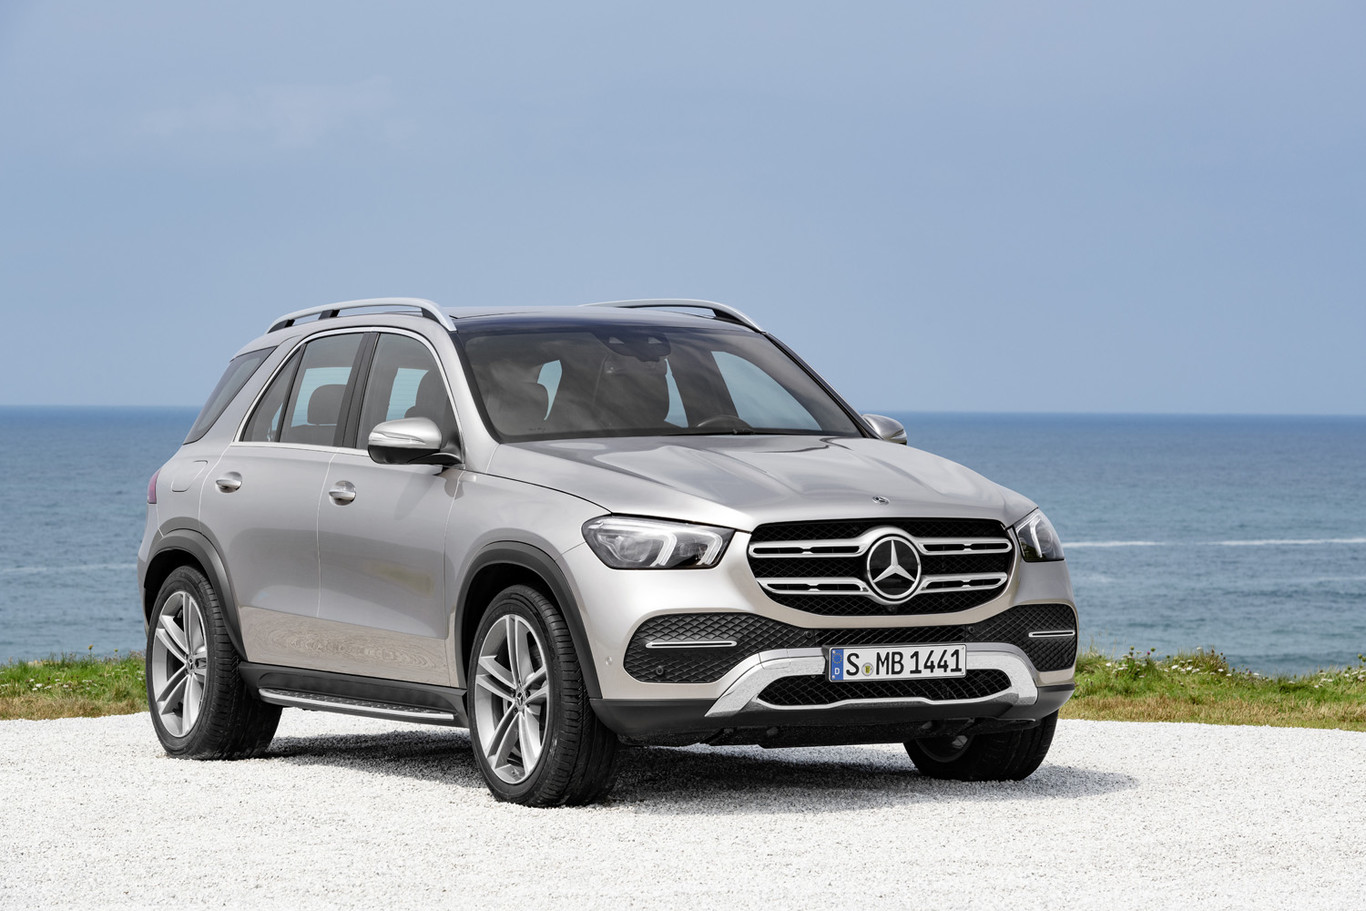 The Mercedes-Benz GLE 2019 premieres design, fully digital interior and lots of technology